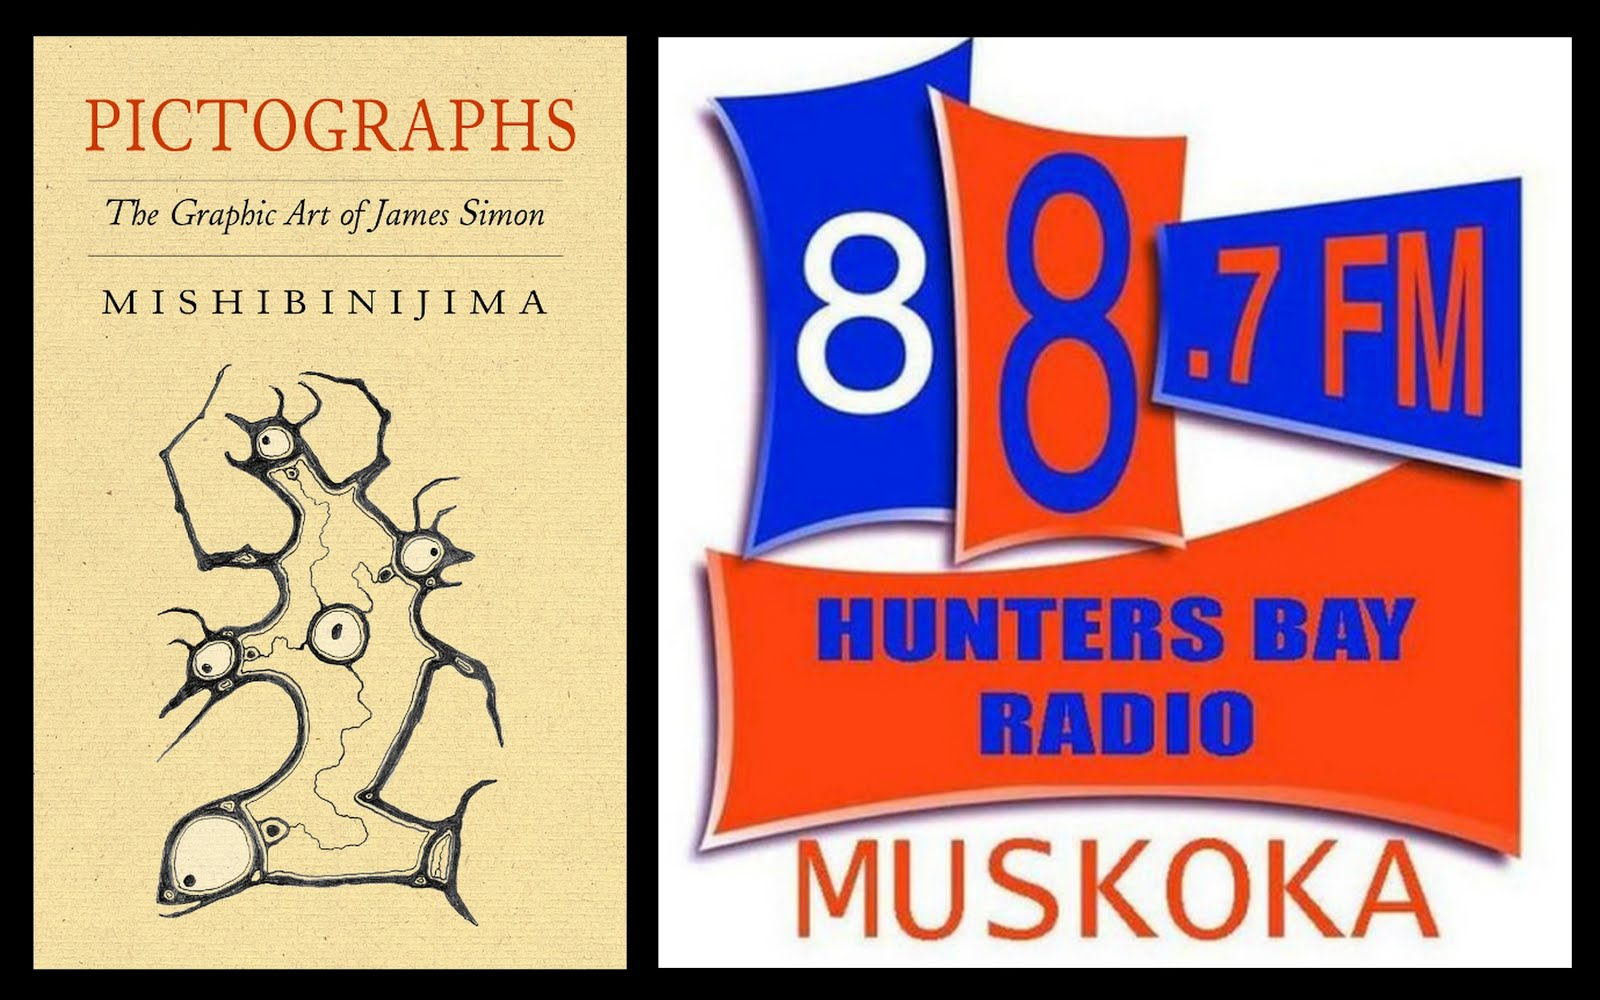 HUNTERS BAY RADIO STATION BOOK INTERVIEW, MUSKOKA, ONTARIO